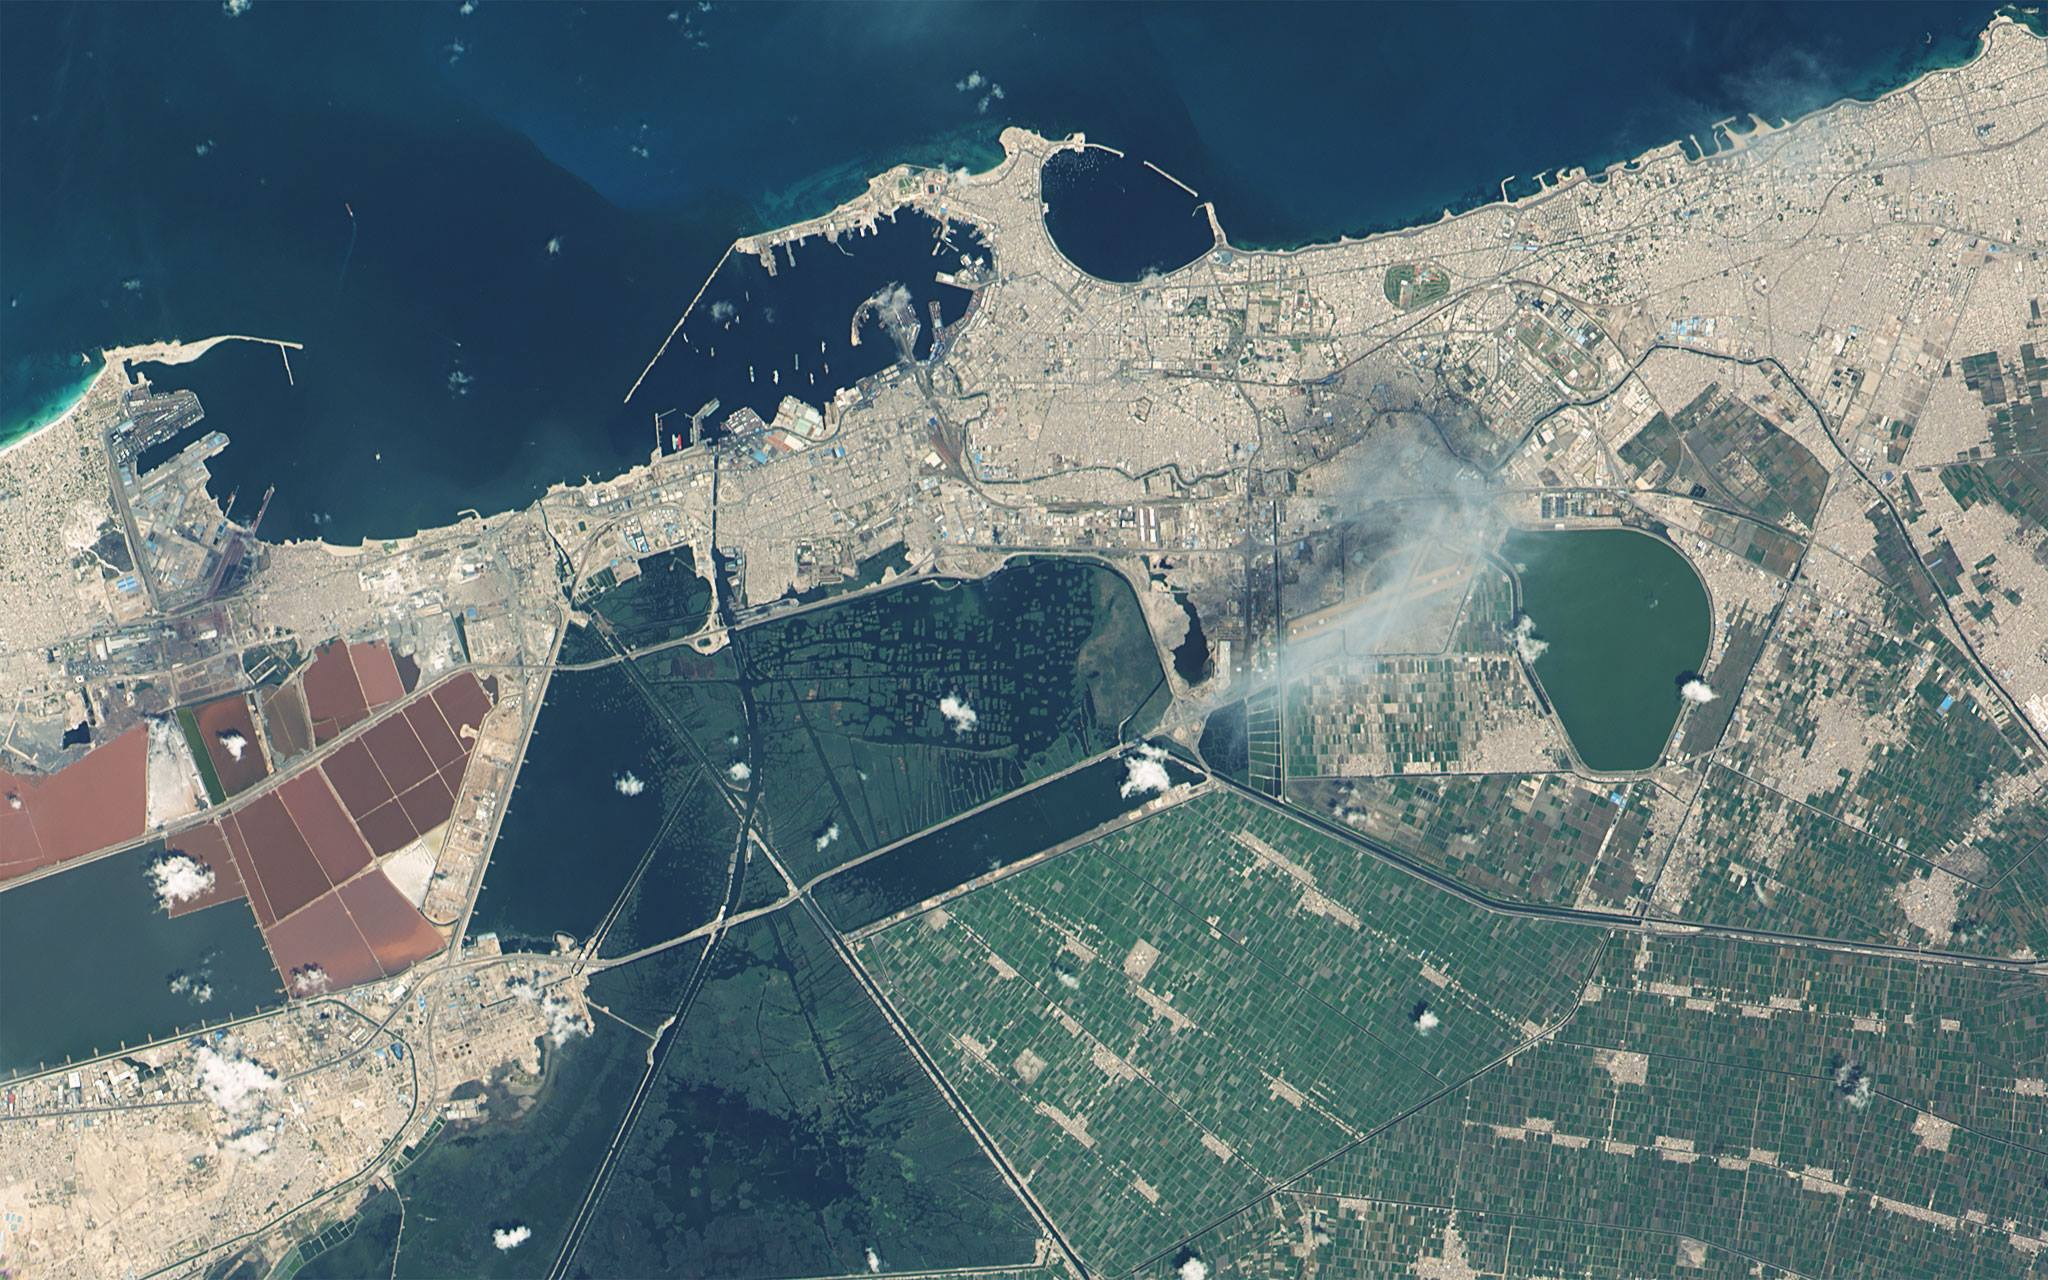 File:Alexandria, Egypt (satellite view).jpg - Wikimedia Commons on traceable map of egypt, earth map of egypt, temperature of egypt, resource map of egypt, ancient egypt, agricultural map of egypt, old map of egypt, physical map of egypt, forecast map of egypt, google maps of egypt, precipitation of egypt, outline map of egypt, topographical map of egypt, statistics of egypt, hd map of egypt, satellite view of egypt, world map of egypt, square miles of egypt, aerial view of egypt, full map of egypt,